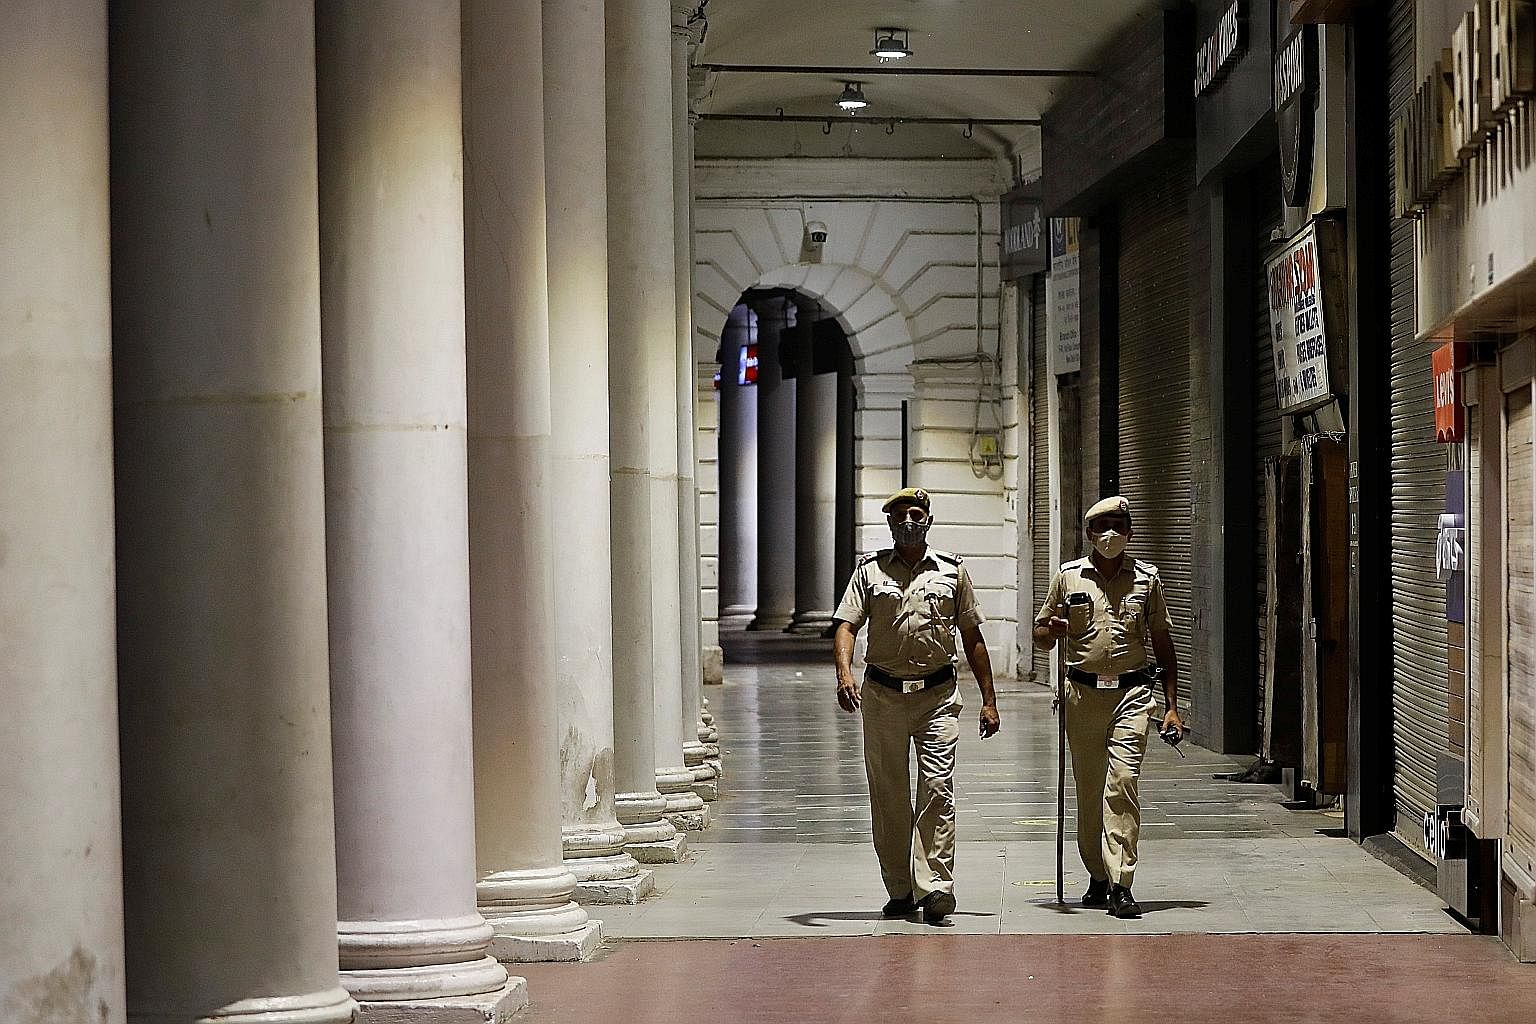 Police patrolling New Delhi's business and financial hub, Connaught Place, yesterday during a curfew. Indian states are imposing new curbs as infections surged to a daily record of 116,000 new Covid-19 cases. Press reports said hospitals were hit, es